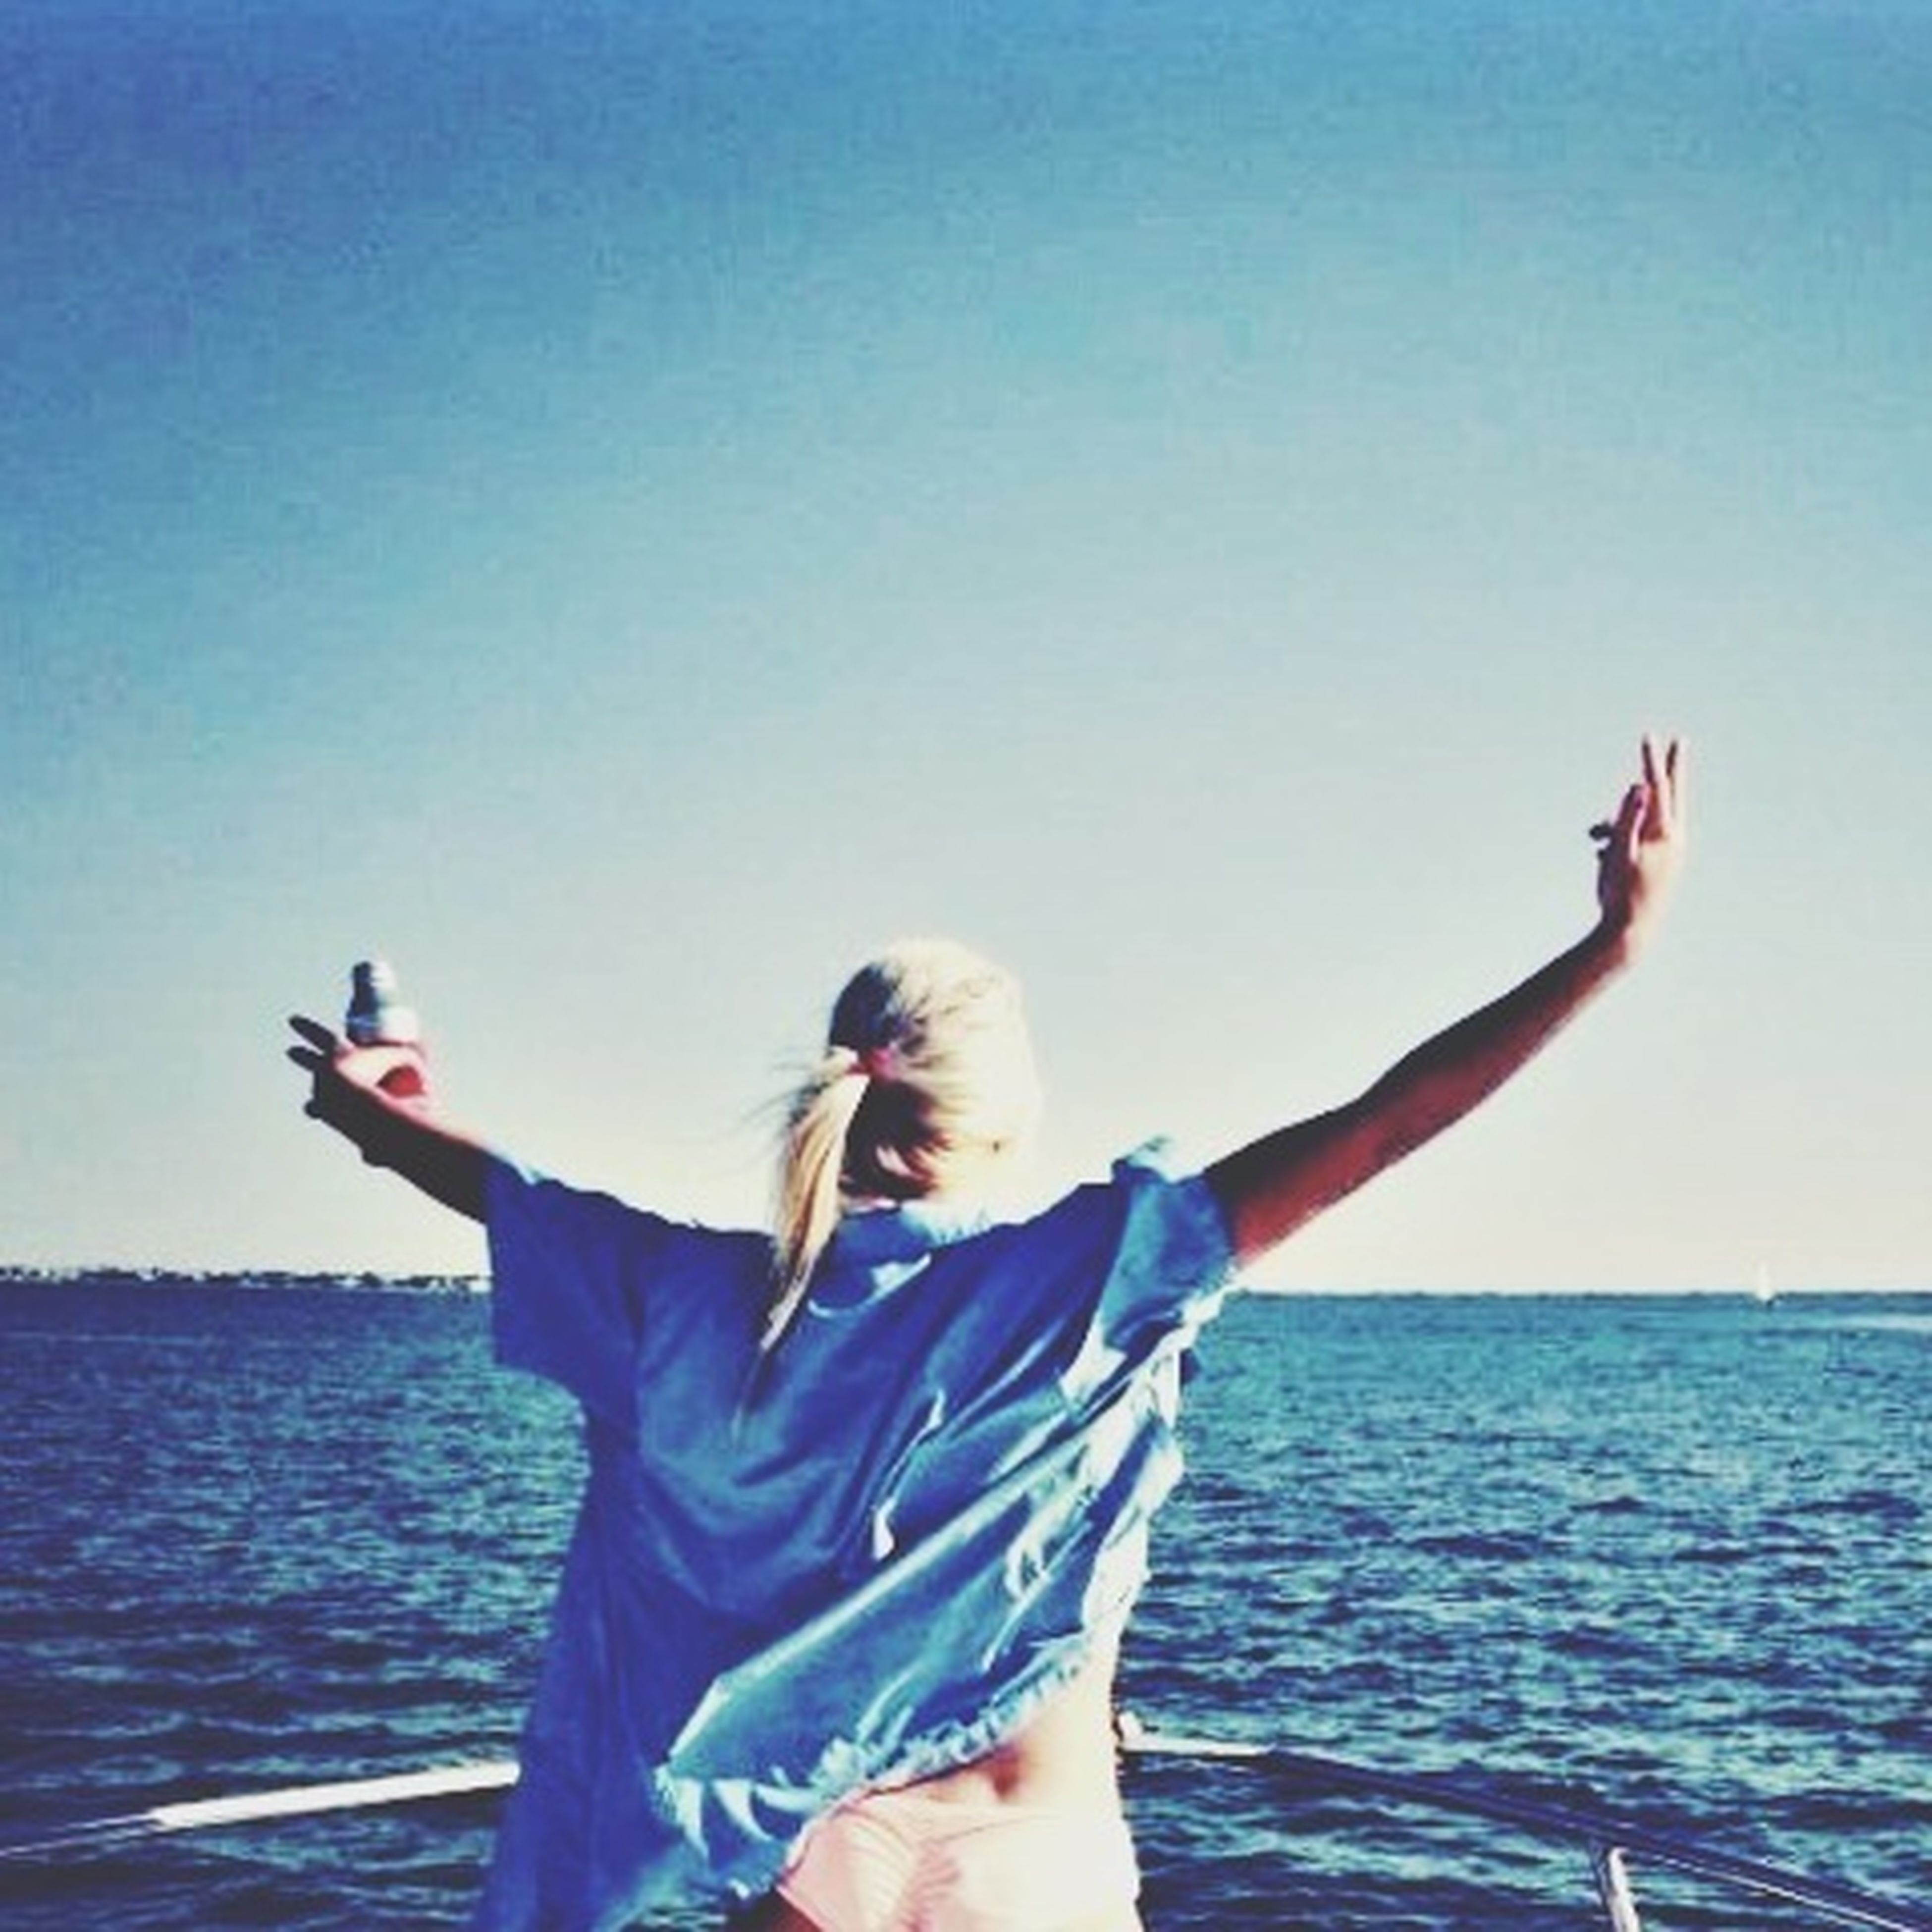 lifestyles, leisure activity, sea, water, young adult, clear sky, young women, vacations, person, horizon over water, standing, three quarter length, bikini, blue, waist up, arms raised, copy space, enjoyment